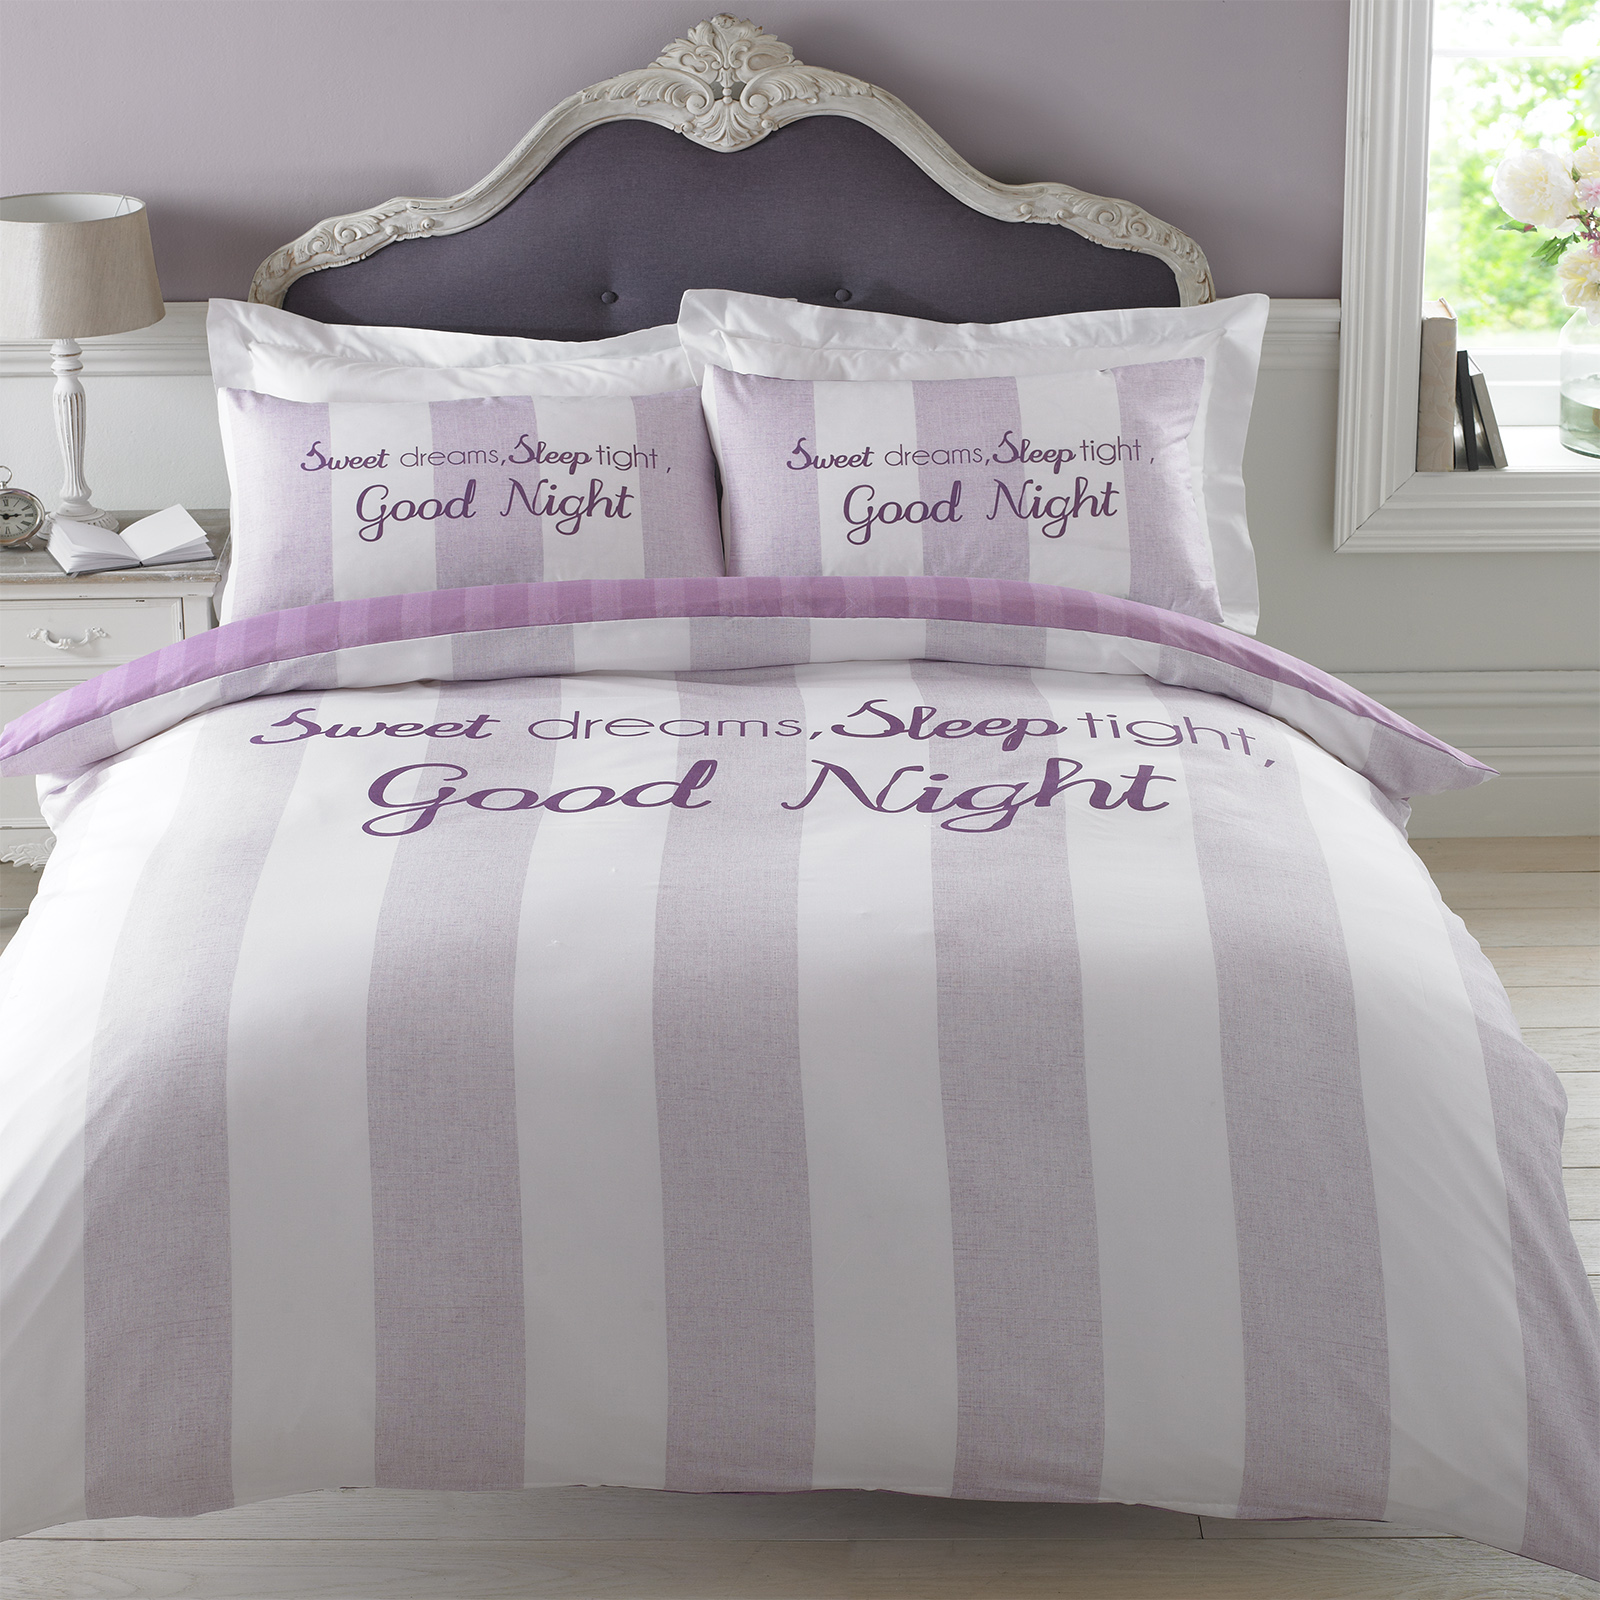 Lilac Bedroom New Duvet Cover With Pillowcase Bedding Set Sweet Dreams Sleep